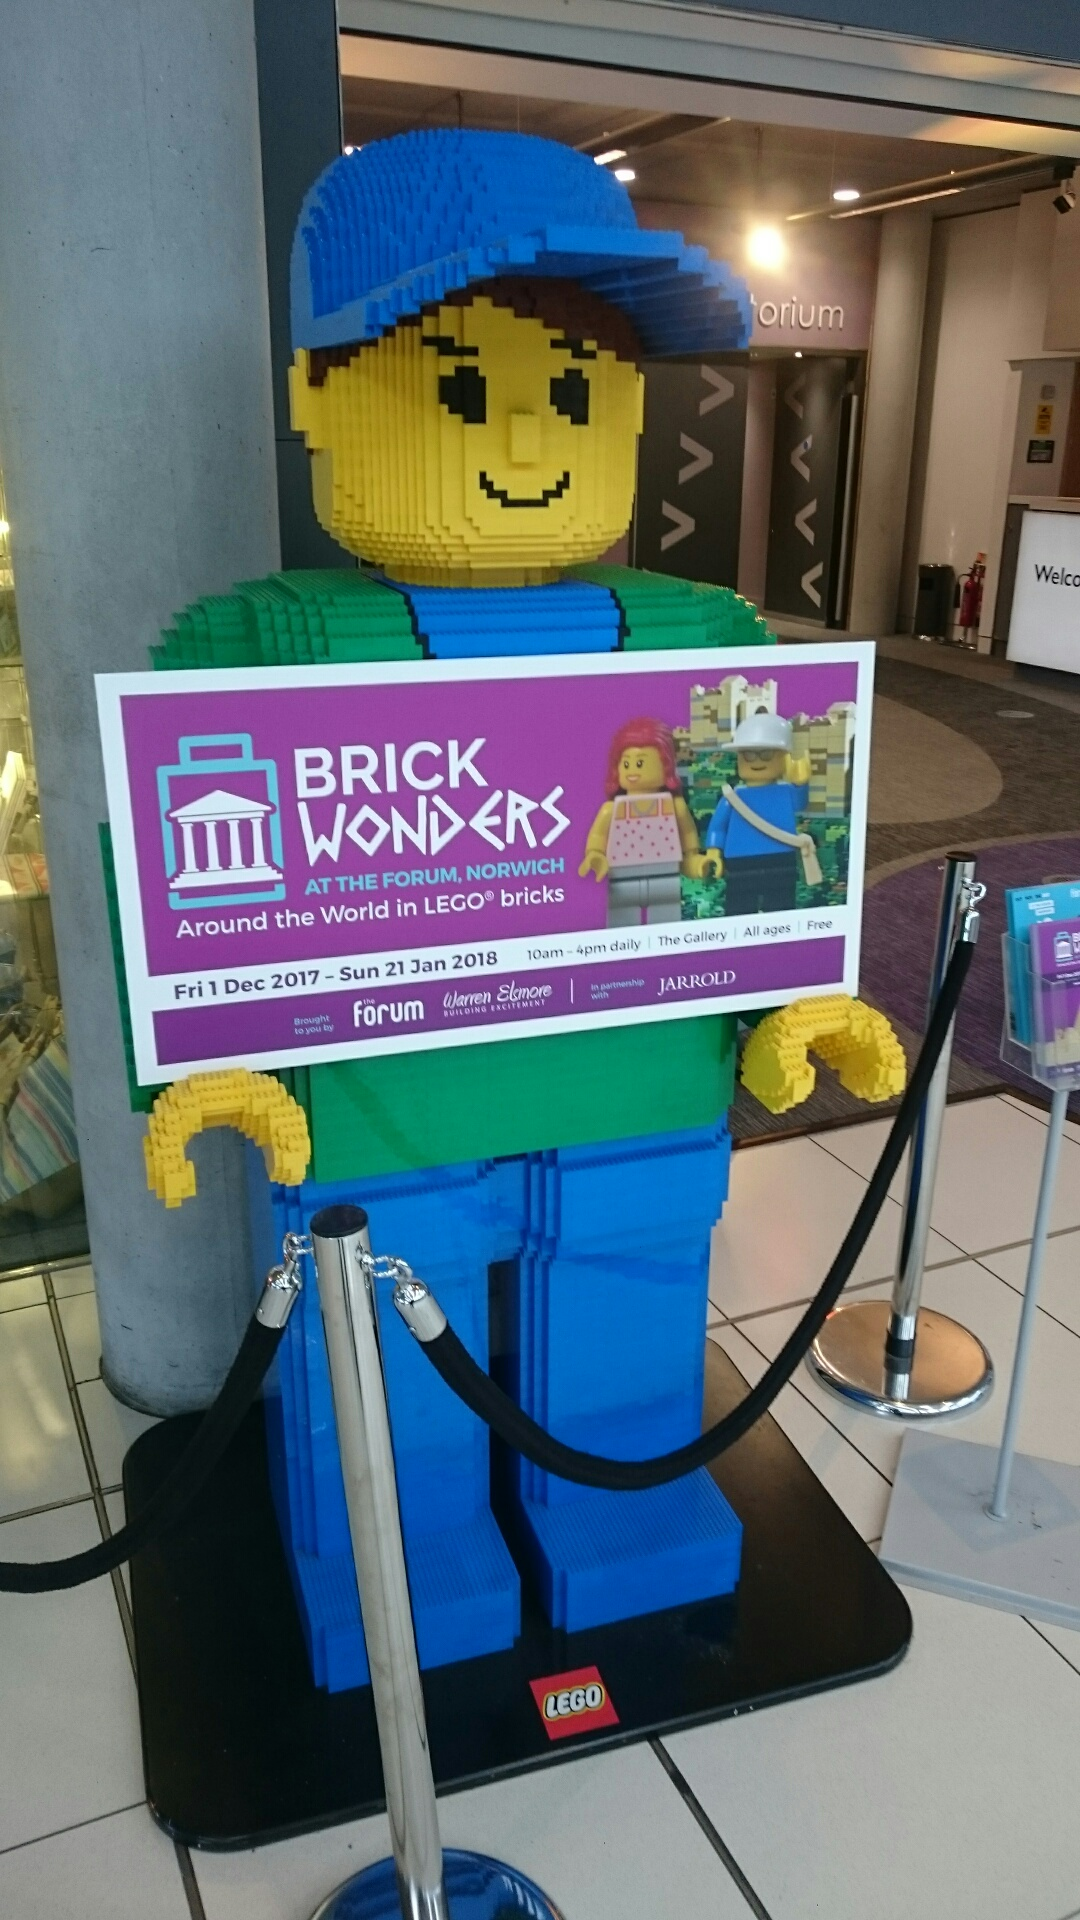 Brick wonders at the Forum, Norwich.